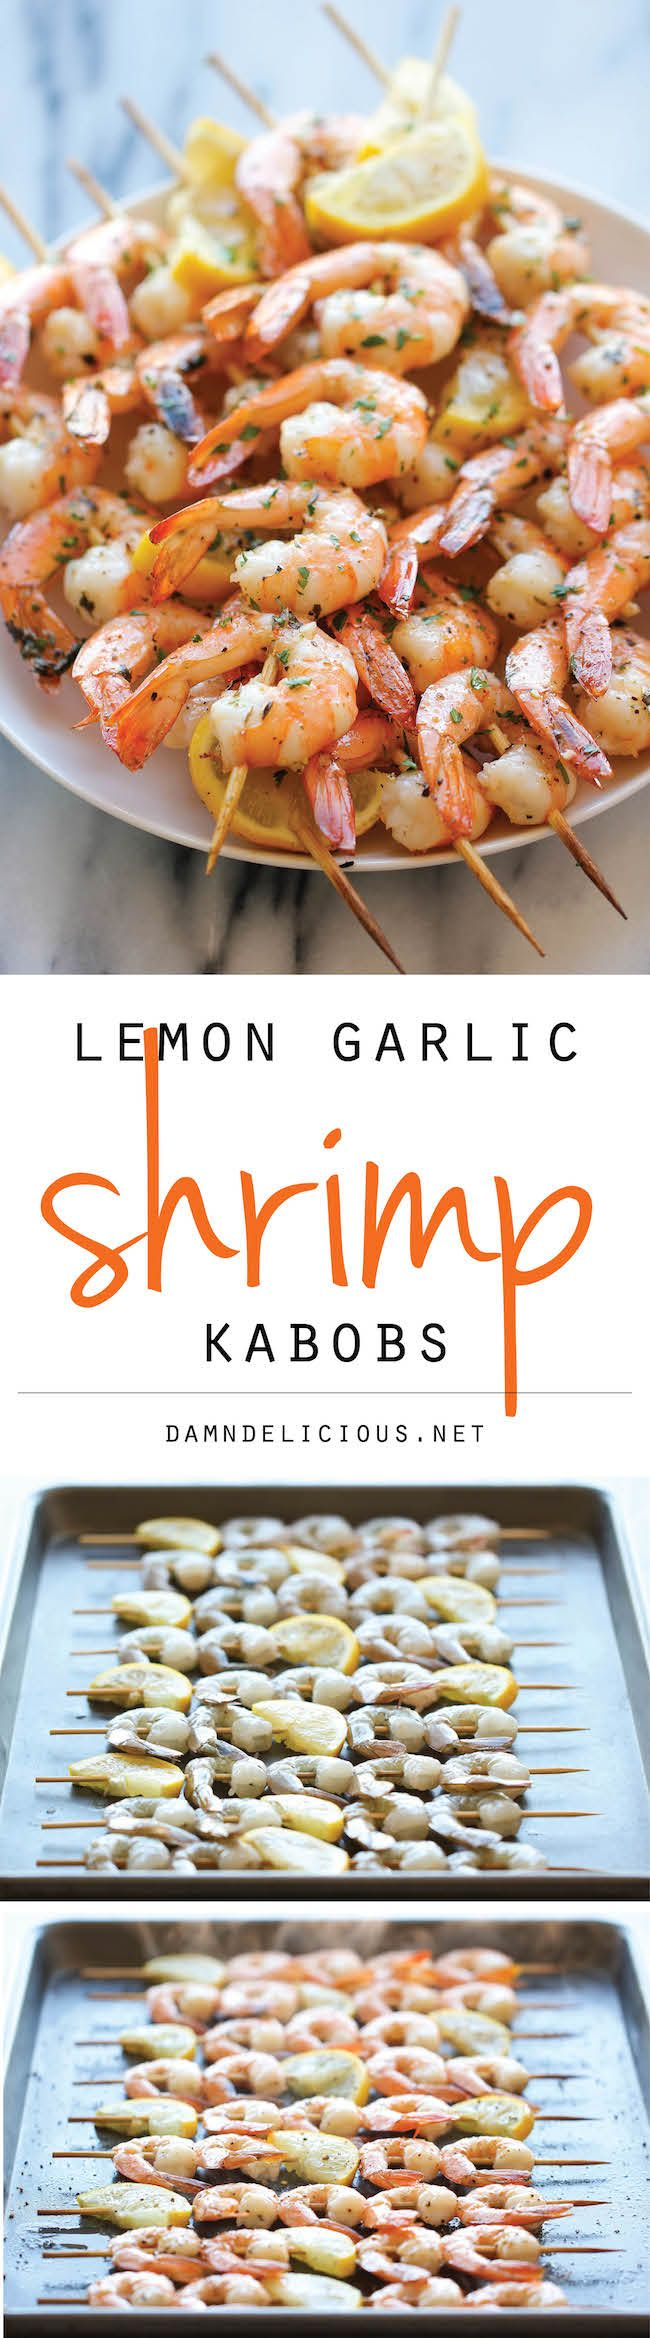 Lemon Garlic Shrimp Kabobs - The easiest, most flavorful way to prepare shrimp – so perfect for summer grilling or roasting!